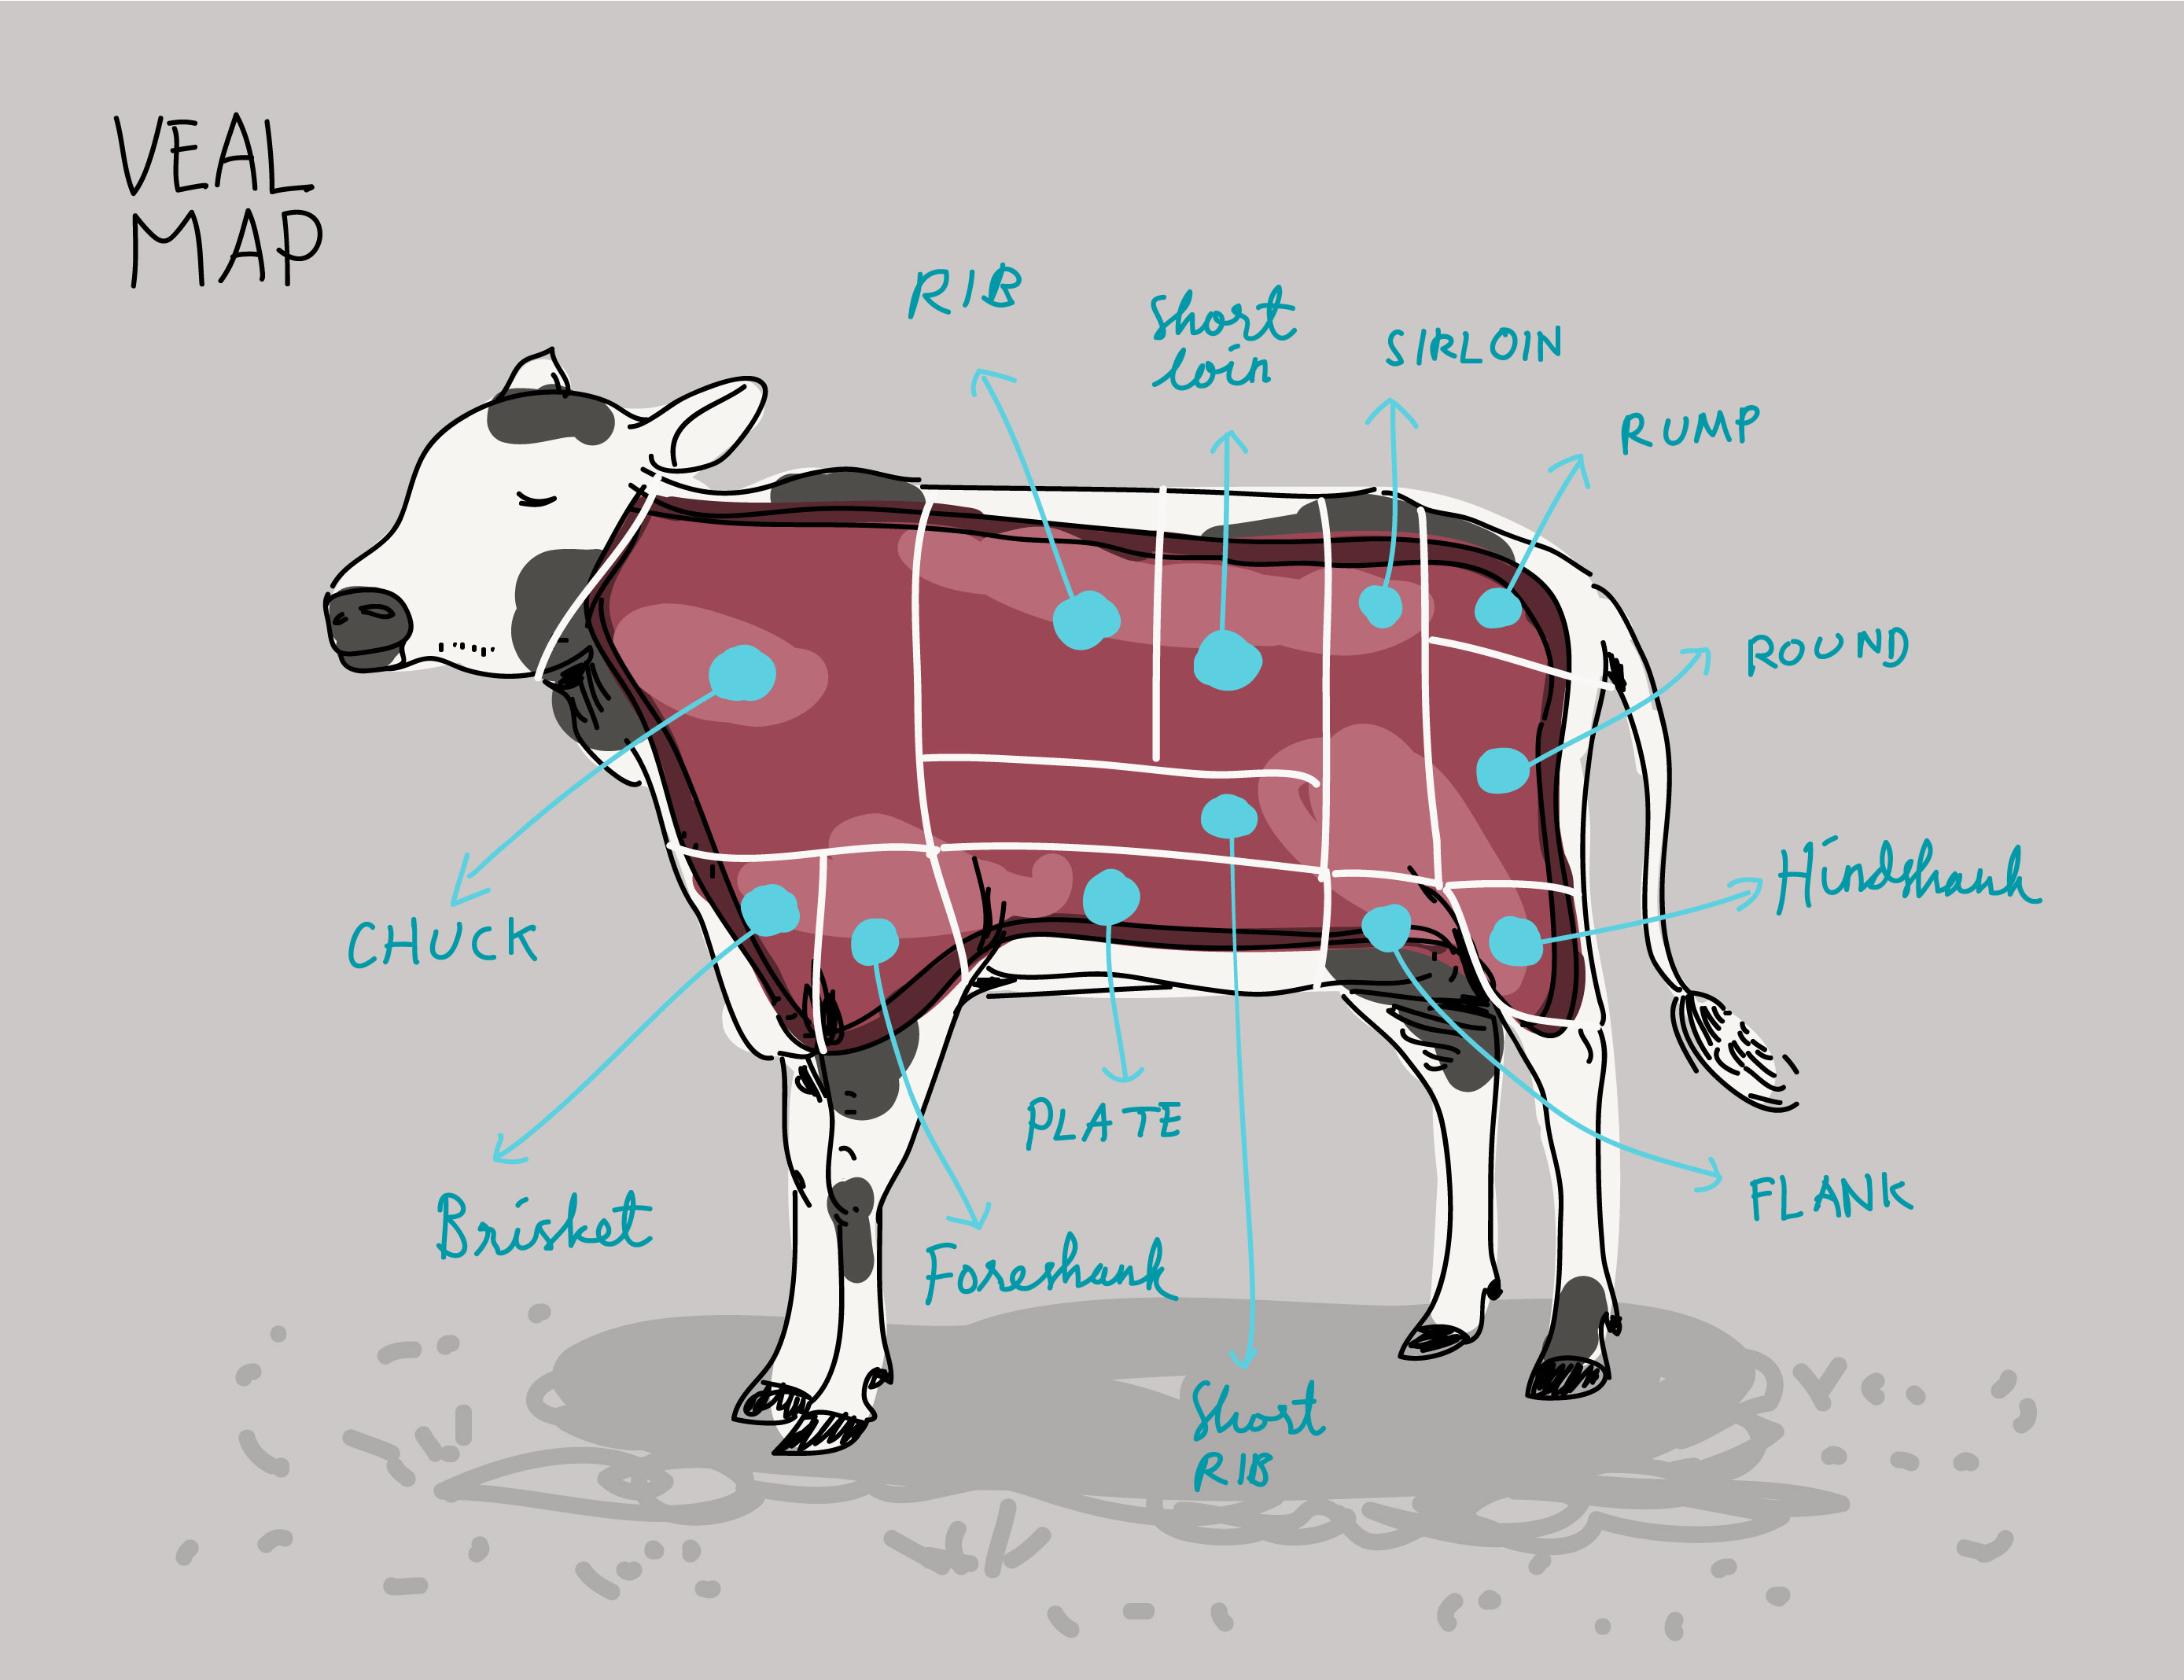 Black Beef Cut Diagram Guide And Troubleshooting Of Wiring Pig Images Gallery